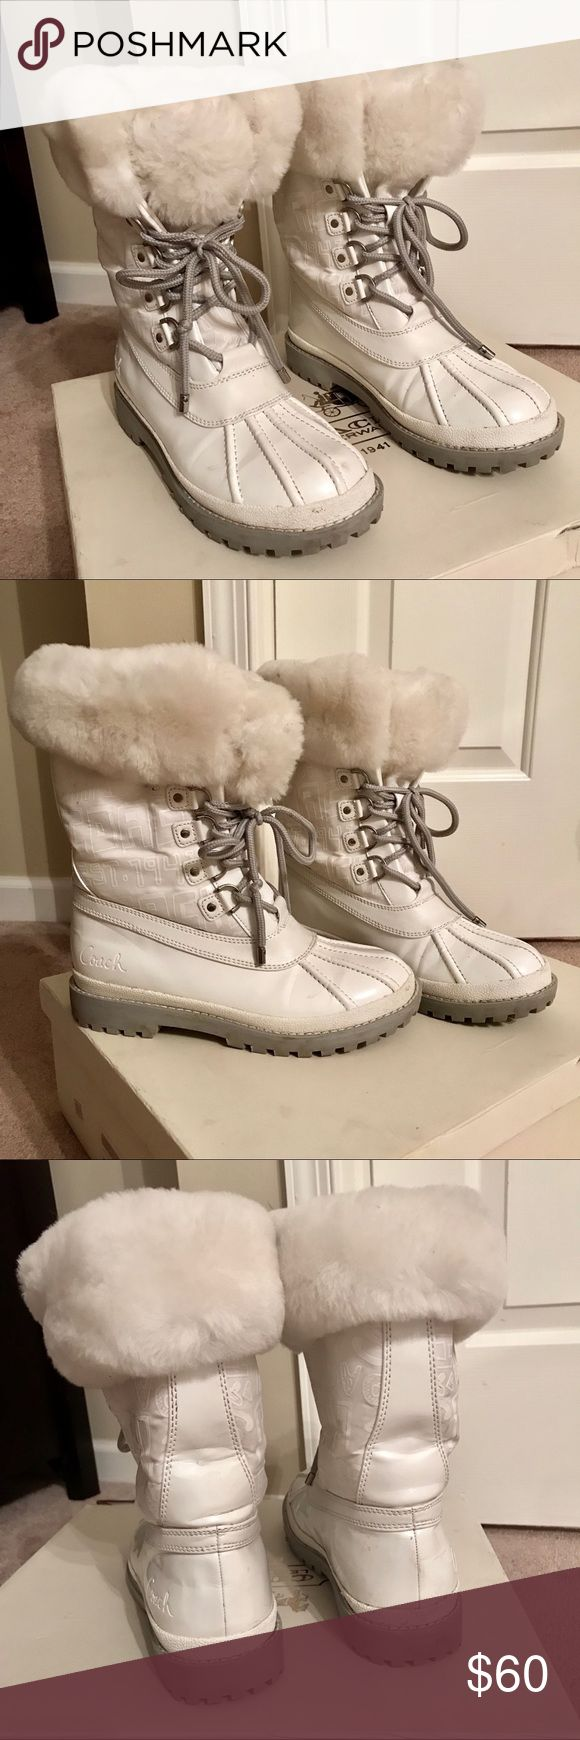 COACH white snow boots with fur GOOD CONDITION COACH snow boots. White with grey laces and sole. White fur interior. Size 7. Only worn 2-3 times. Light creasing throughout. Minor dirt and marks throughout. Soles in great condition from barely being worn. Coach Shoes Winter & Rain Boots